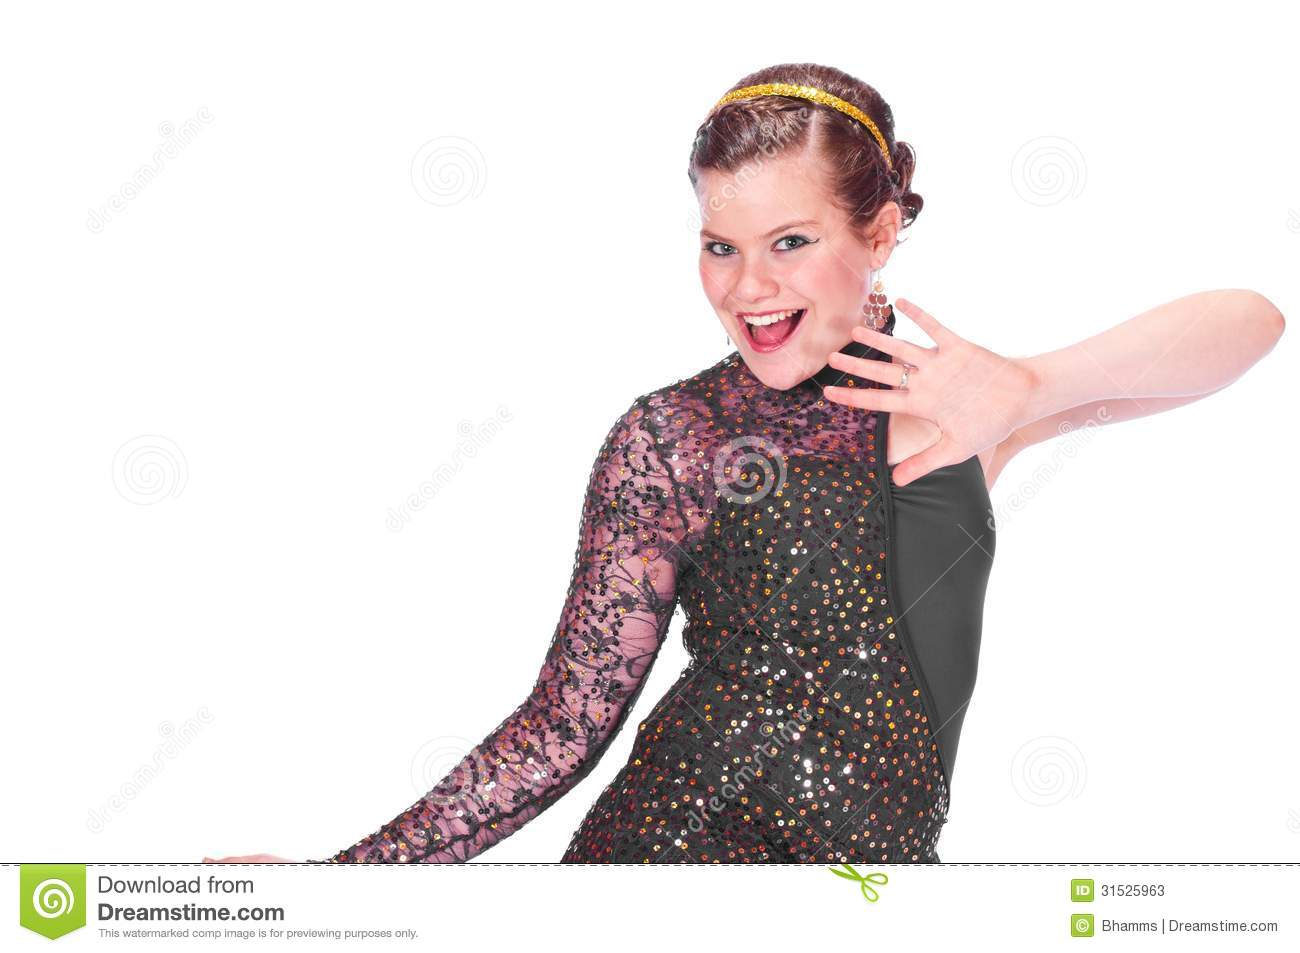 d6fed2250 Girl in dance Costumes stock image. Image of female